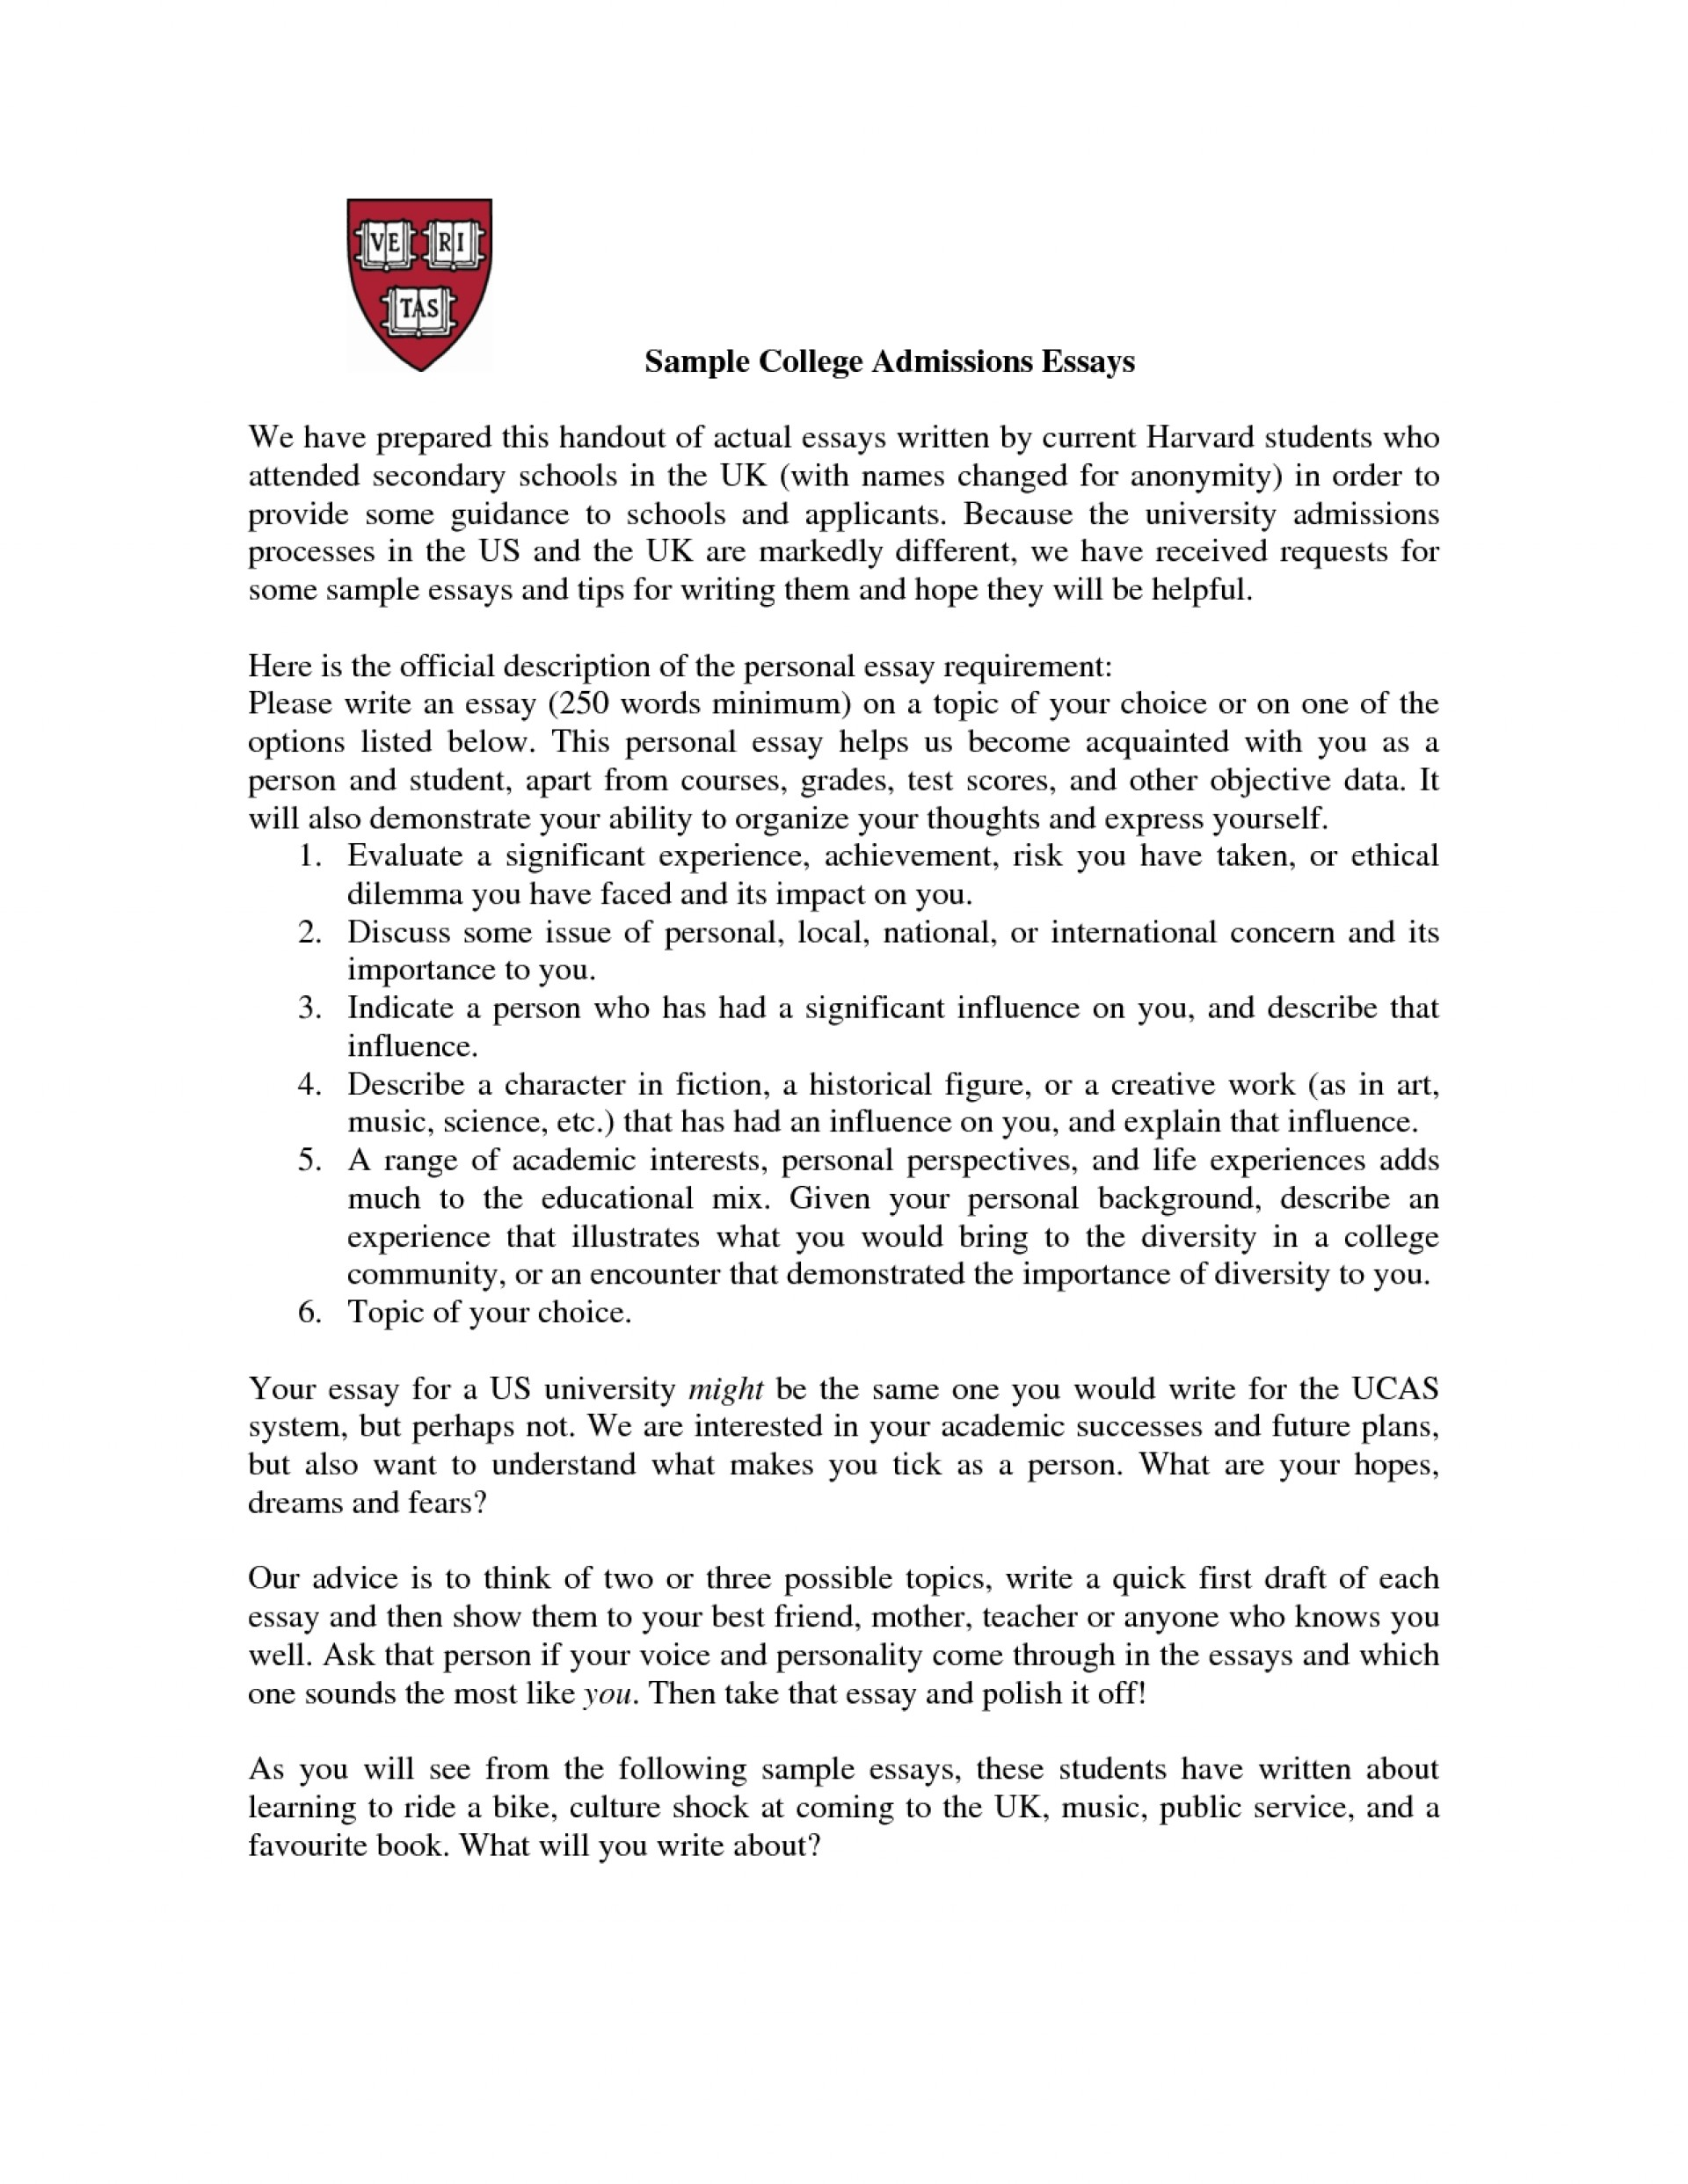 007 How To Write College Entrance Essay Dpy4cpaqnd Striking A Good Introduction For Application Admissions Successful 1920